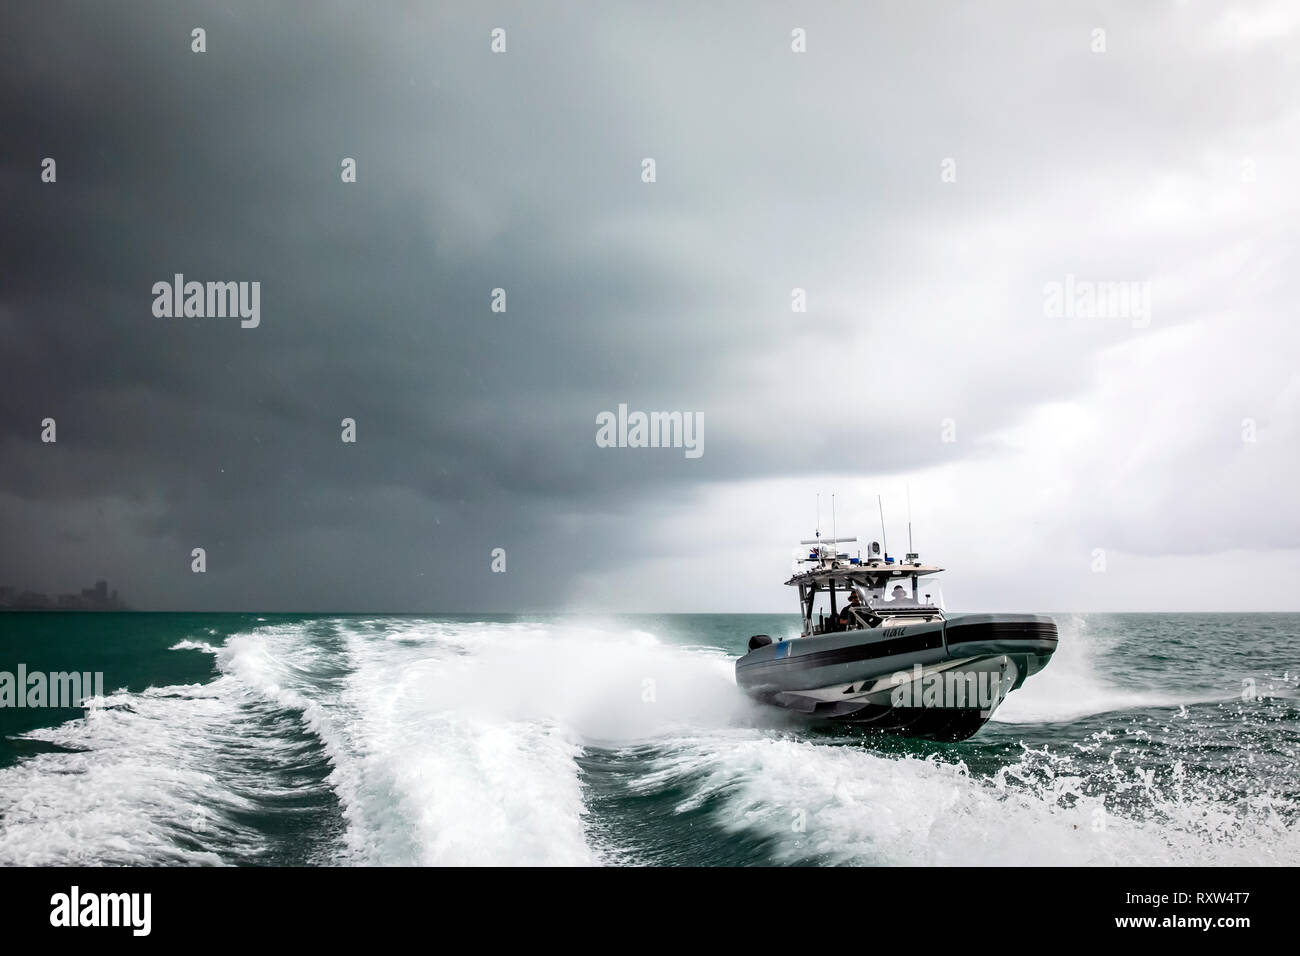 Marine Interdiction agents with U.S. Customs and Border Protection Air and Marine Operations (AMO) on board a Coastal Interceptor Vessel (CIV) with a maximum speed of 58 knots and range of 402 miles. See description for more information. - Stock Image